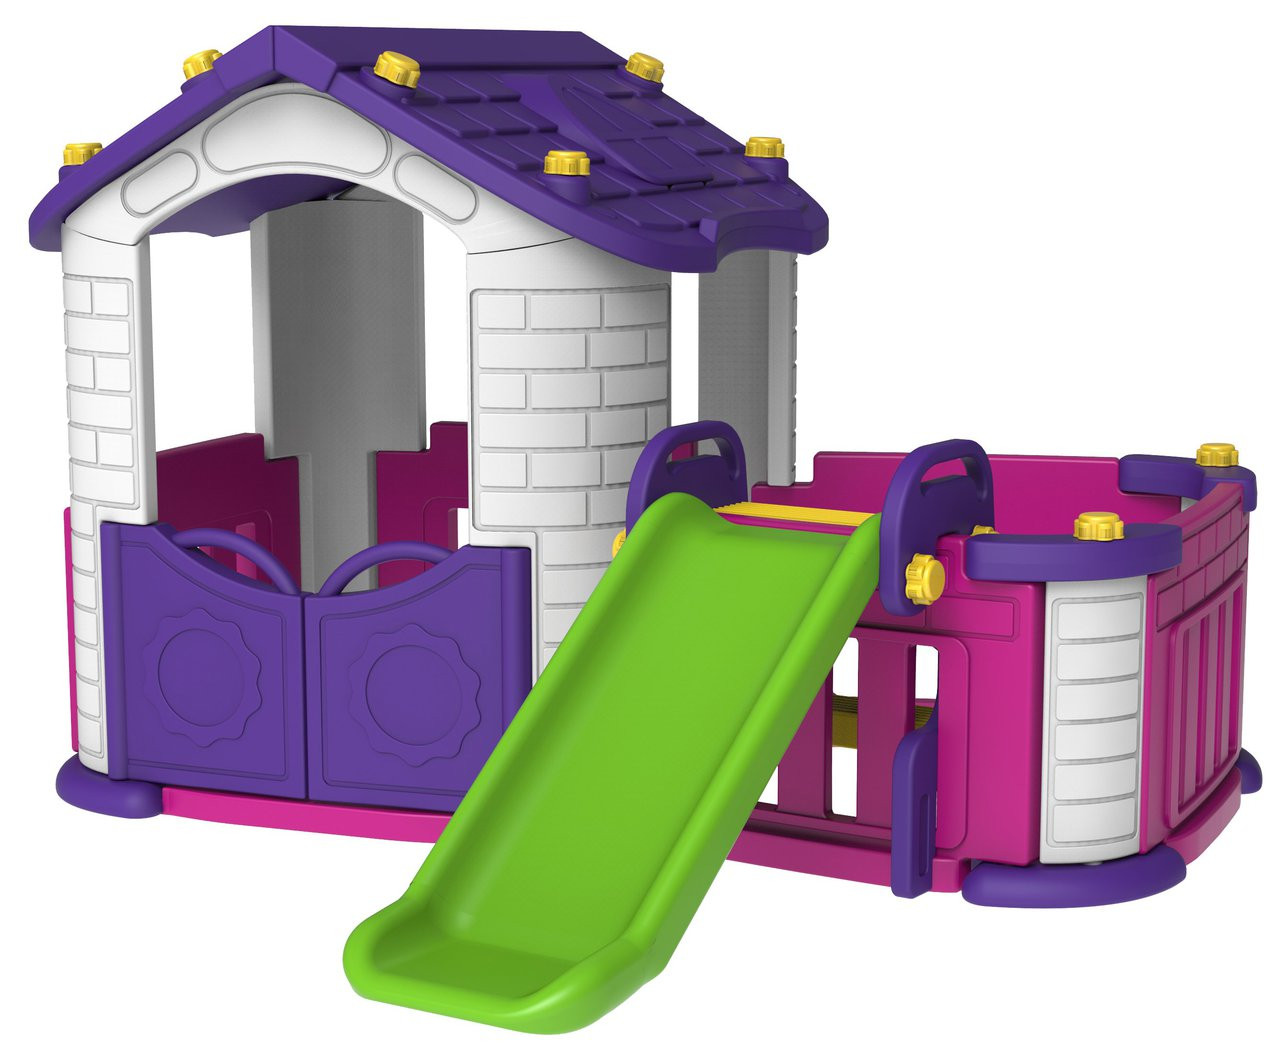 a78123186a90 The Sunshine Modular Children's Pink Play House With Slide